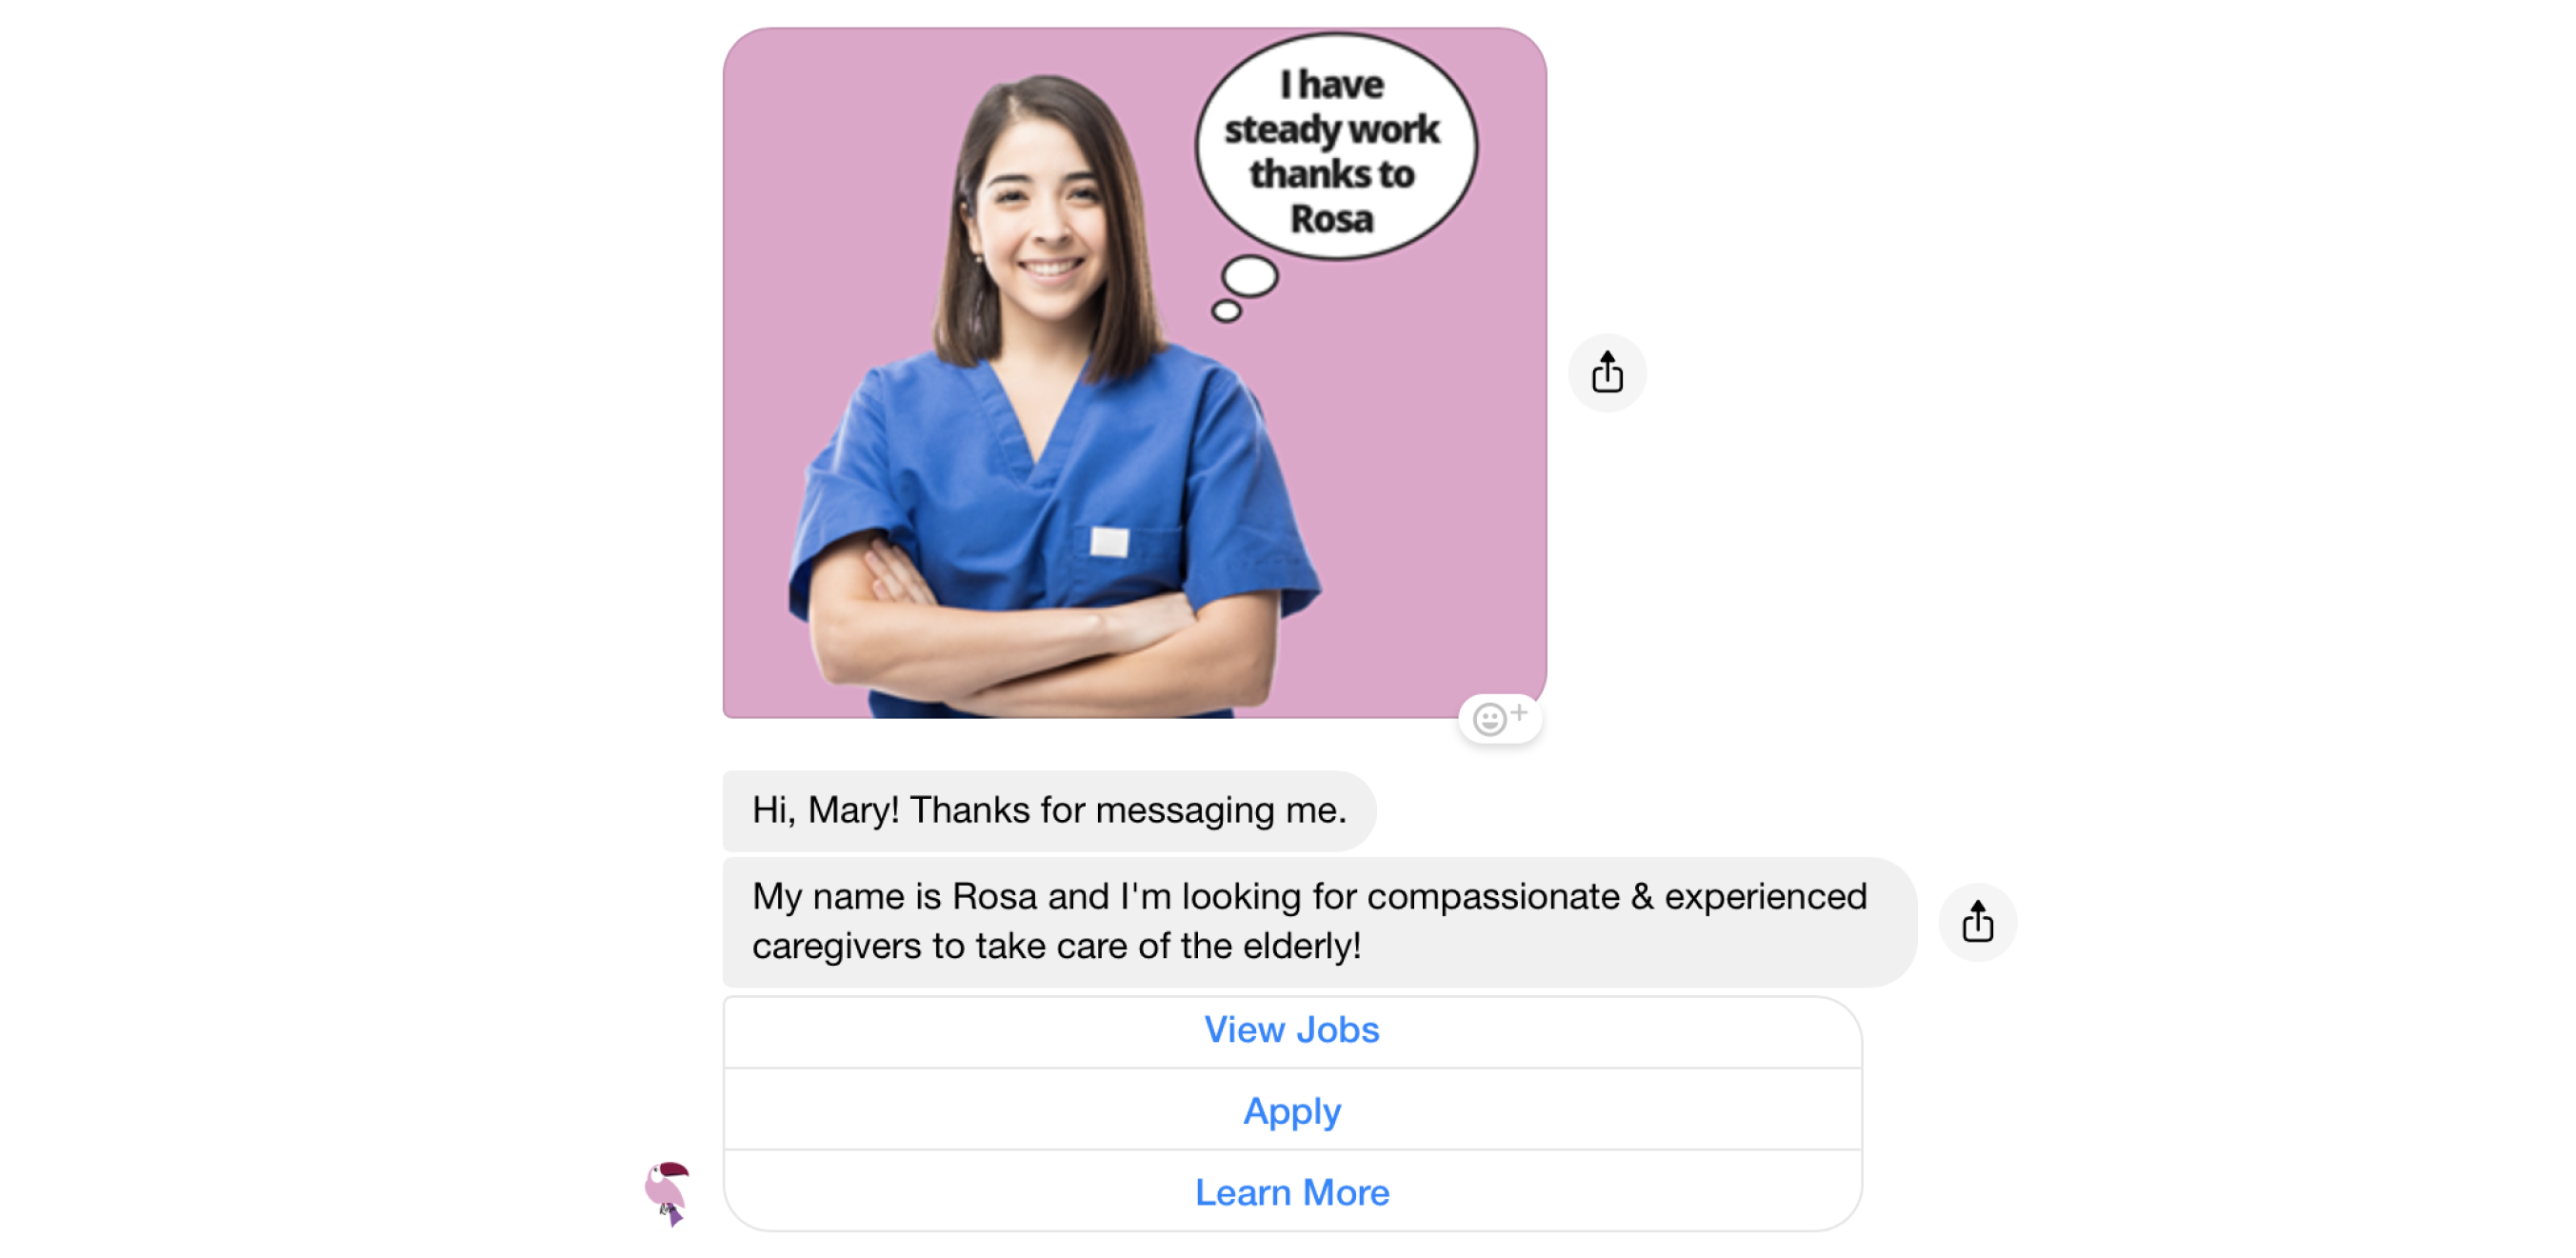 How to Use a Facebook Messenger Bot for HR and Hiring